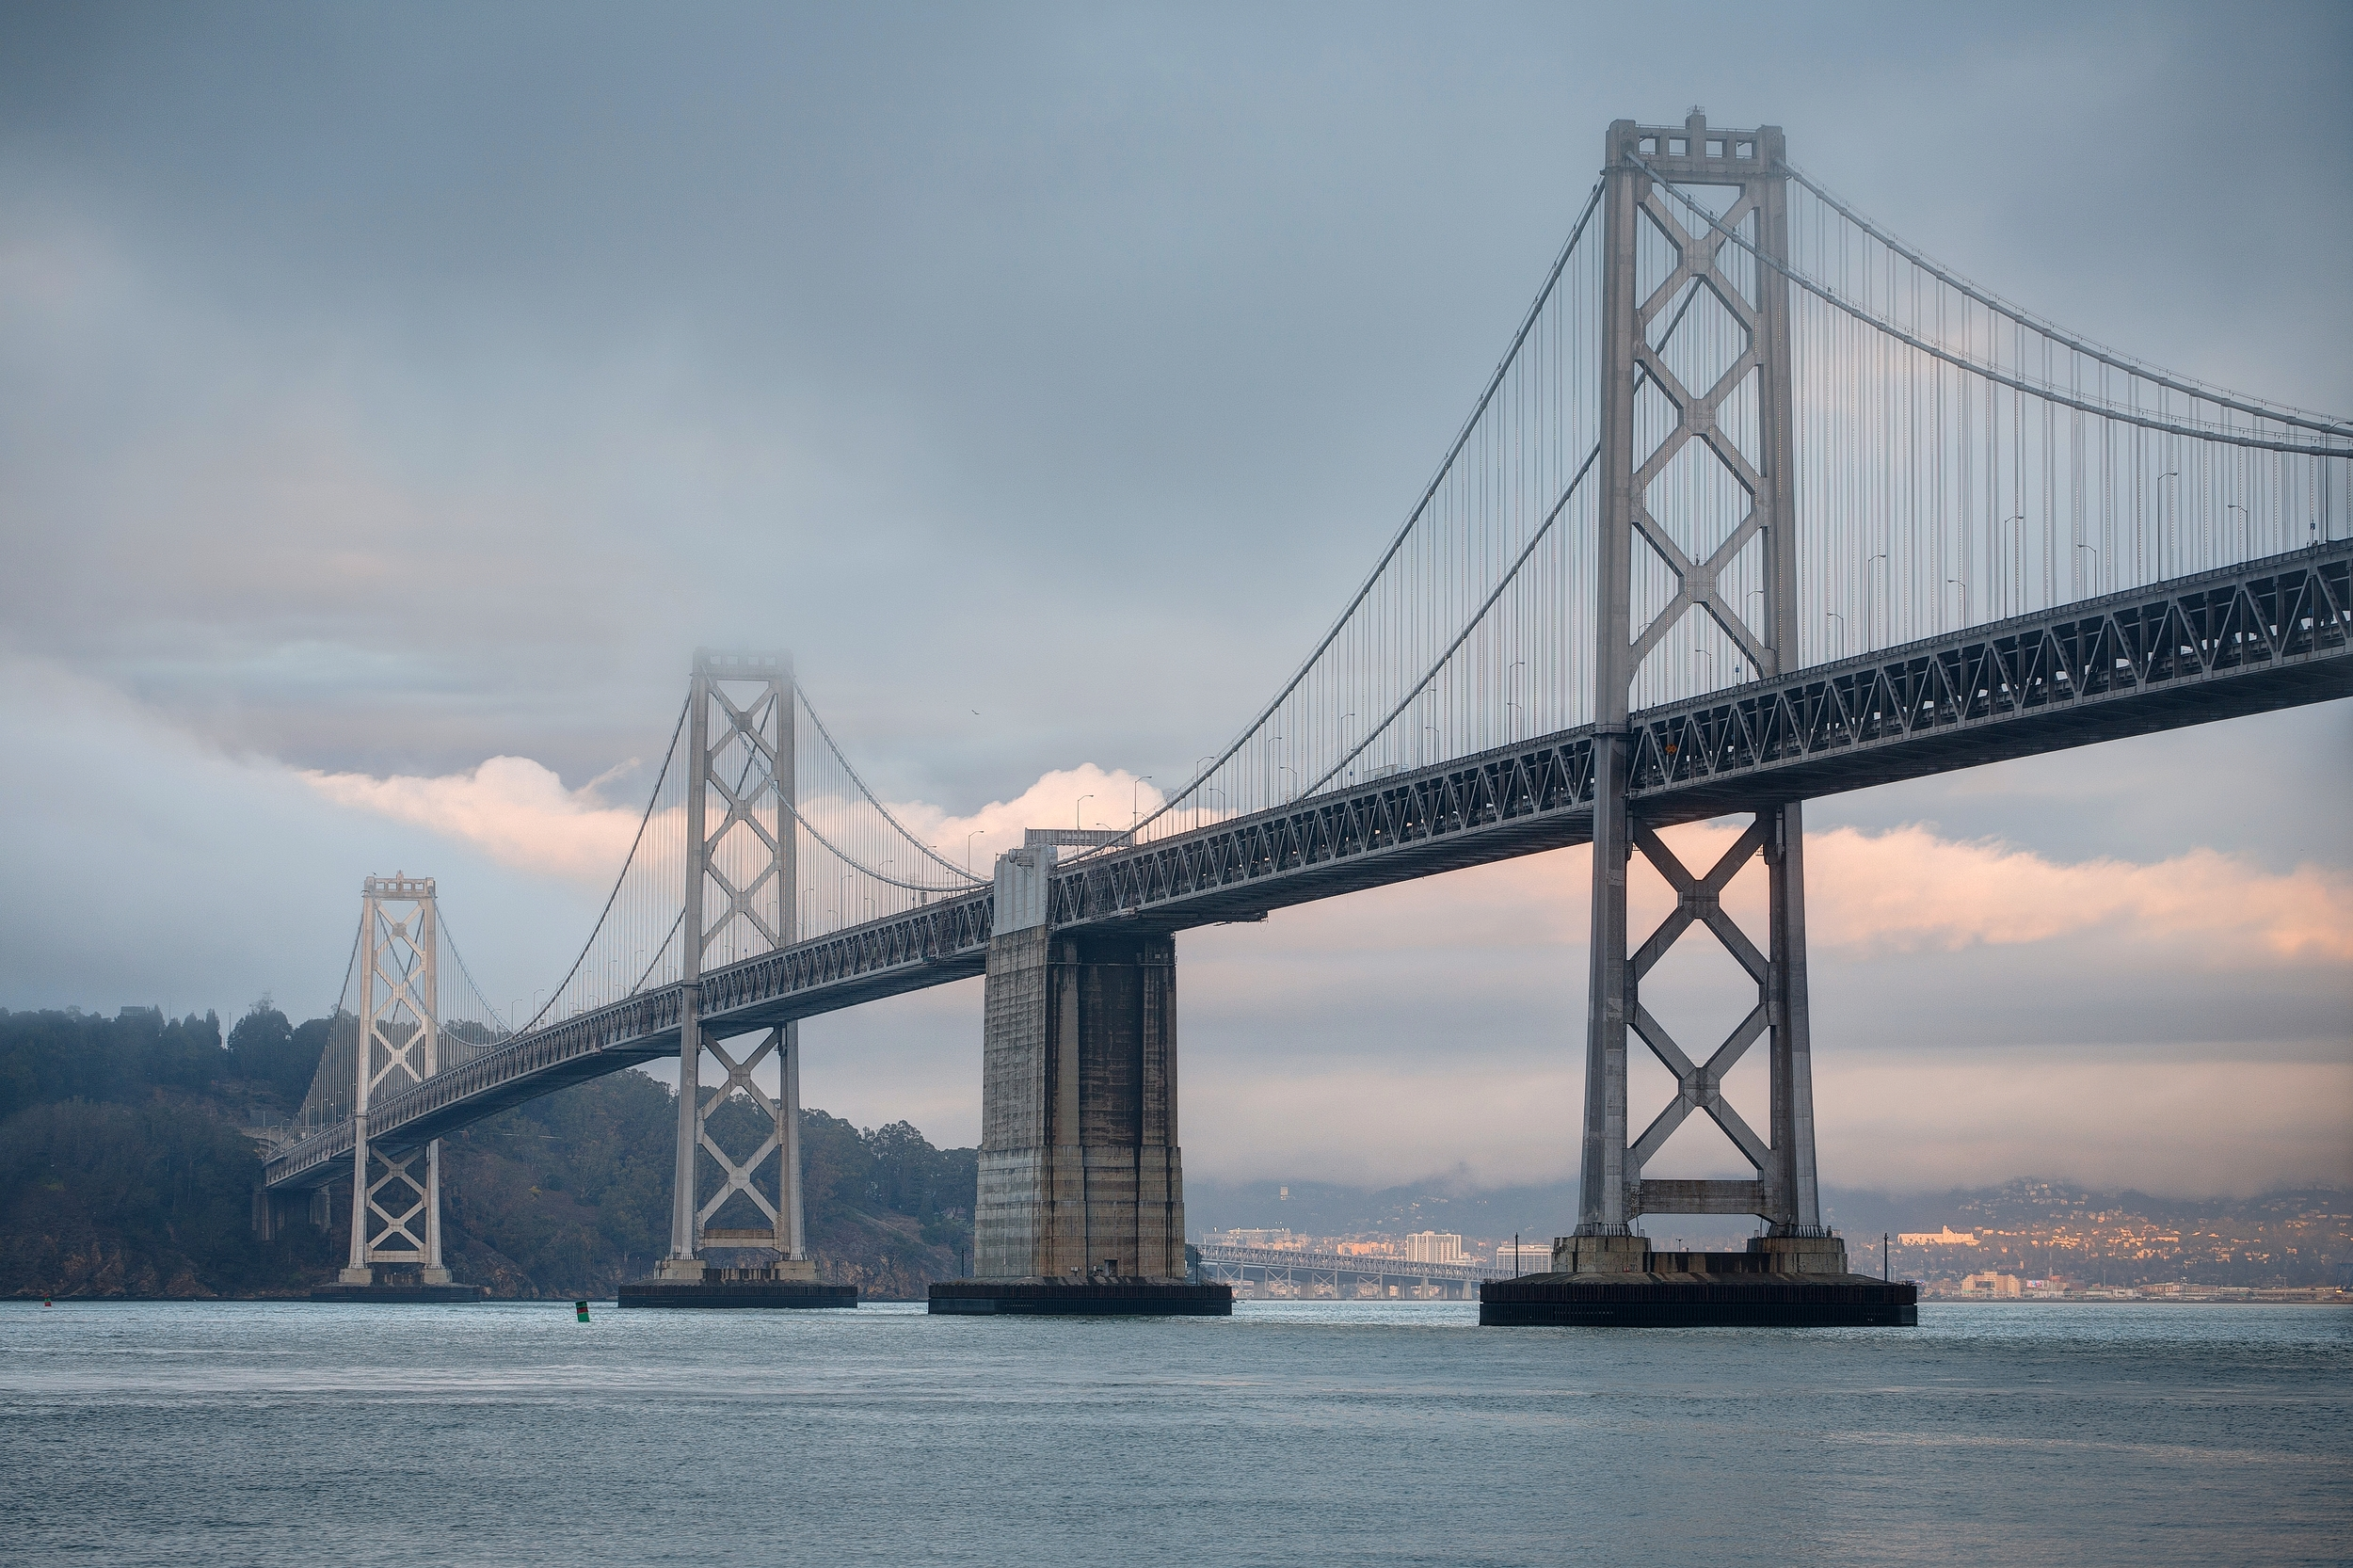 Great views of the Bay Bridge can be seen from the waterfront.